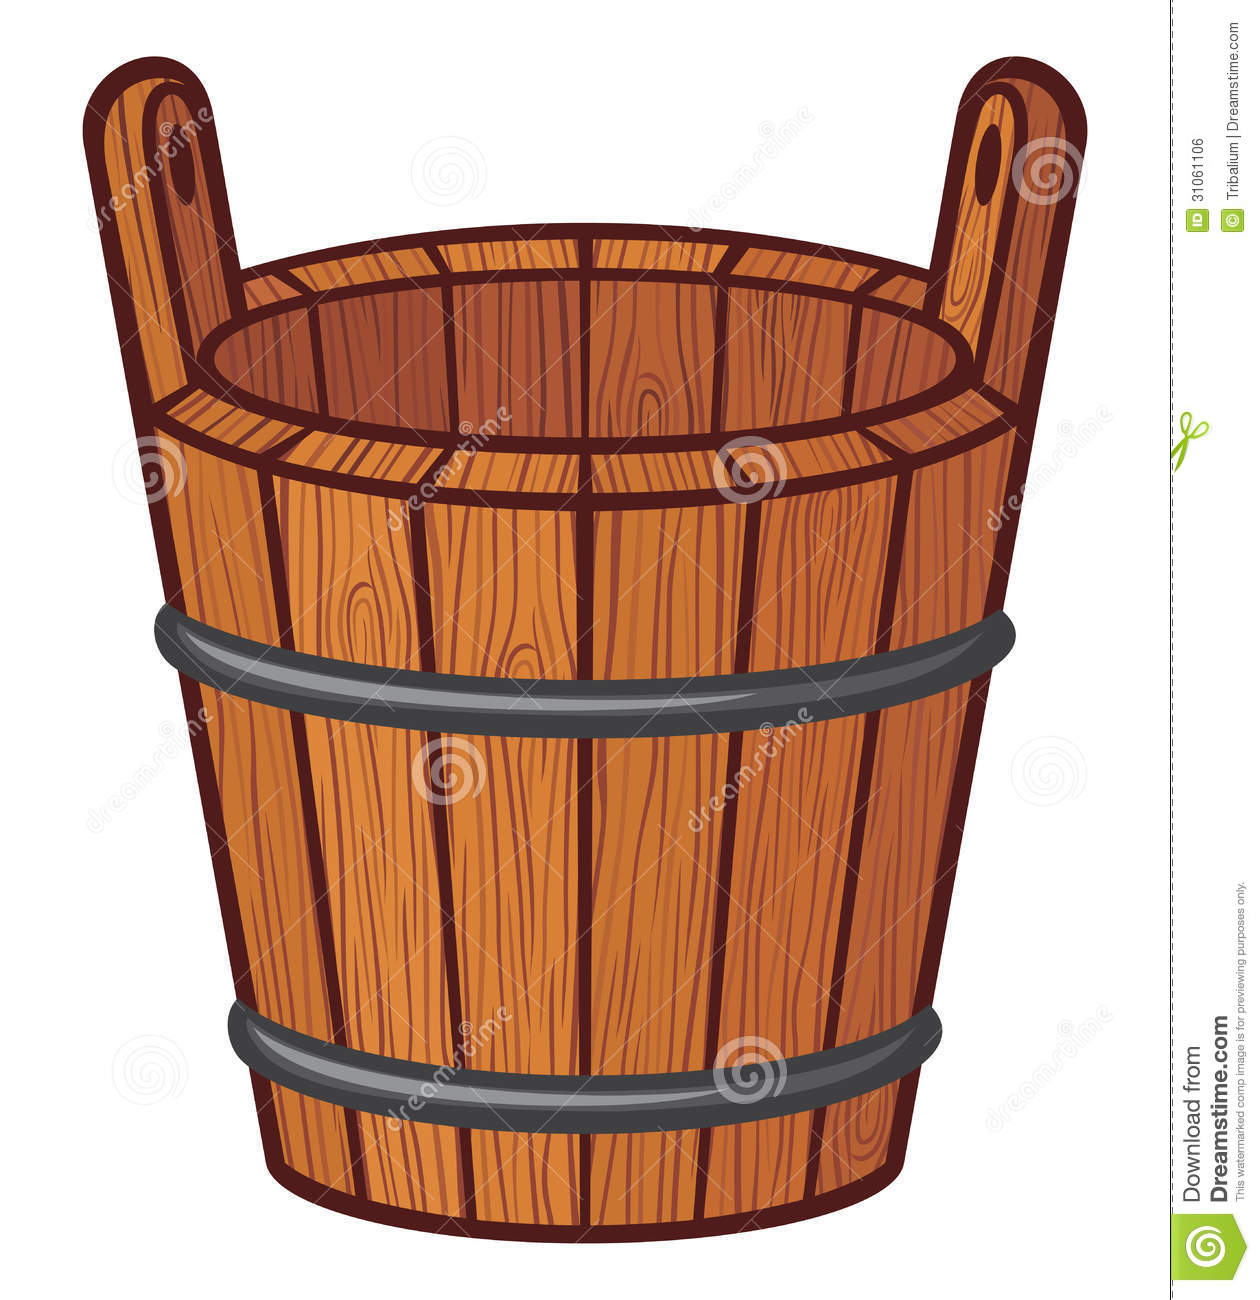 Wooden Bucket Royalty Free Stock Image  Image: 31061106